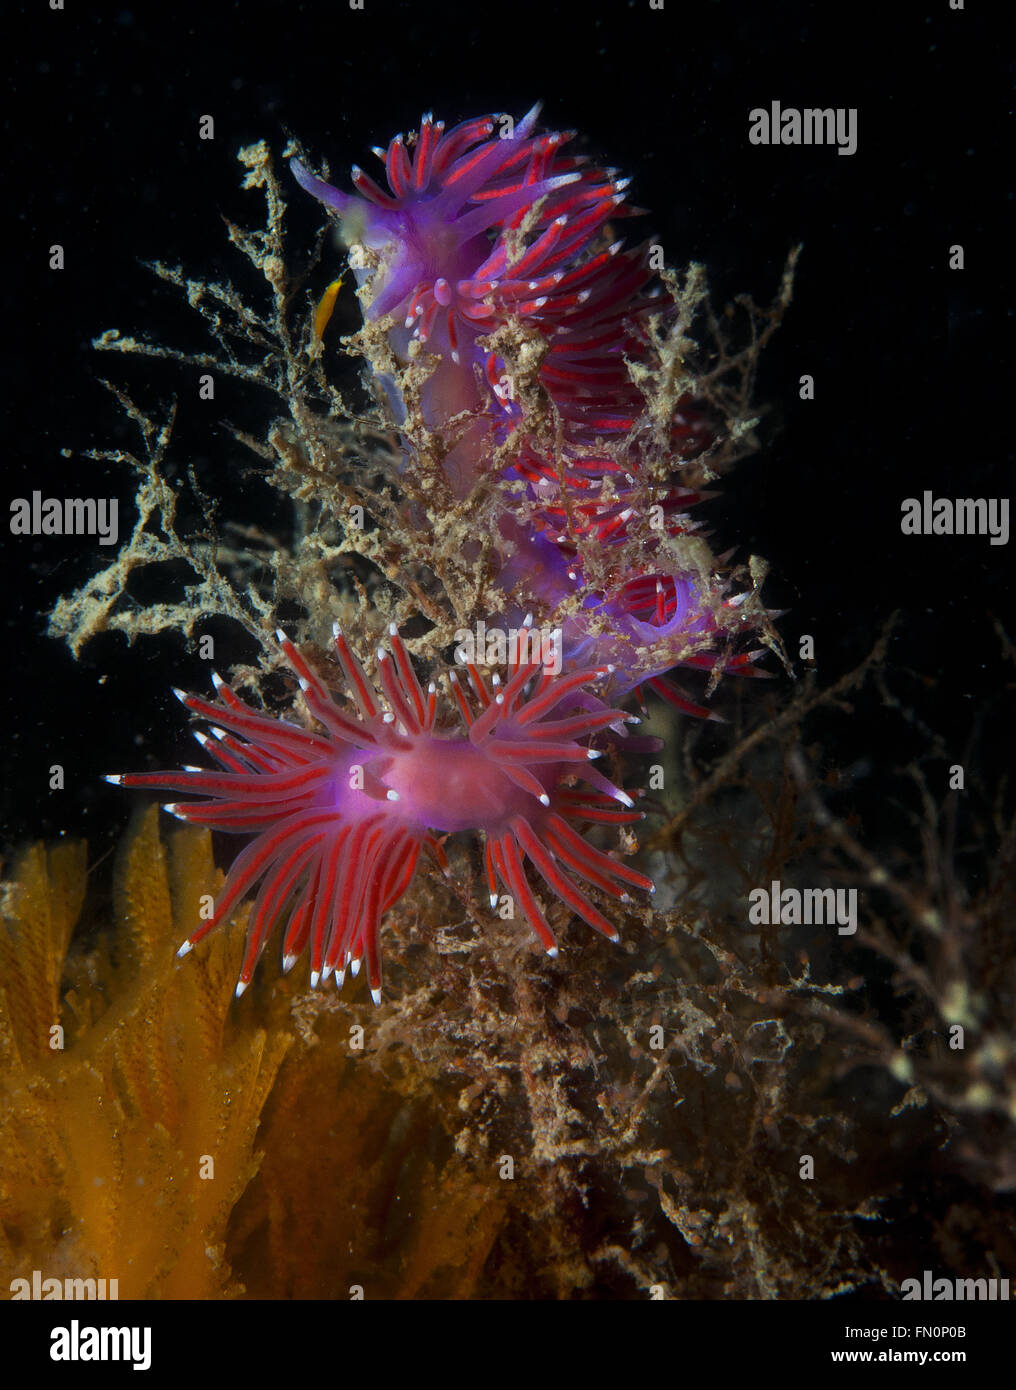 a small purple invertebrate slips on the seabed - Stock Image